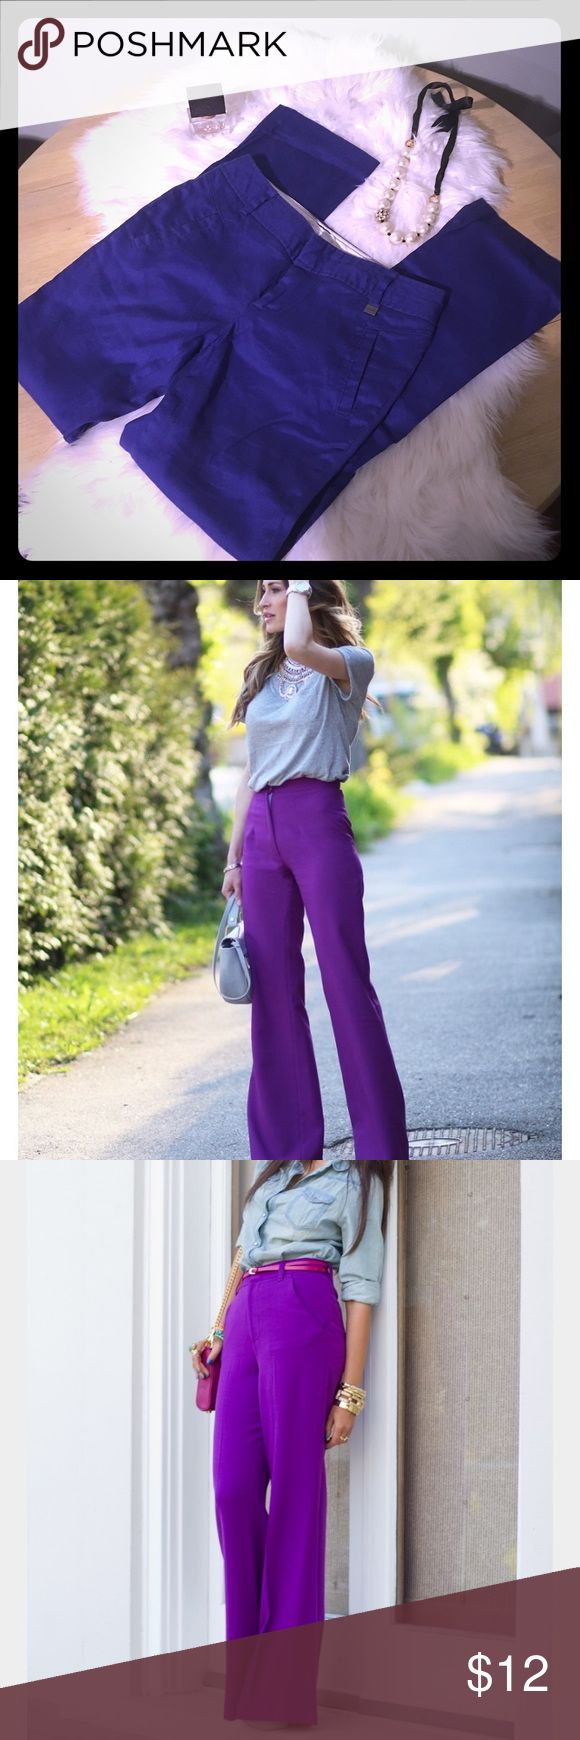 Calvin Klein Dark Purple Linen Blend Pant Dark Purple, Calvin Klein Linen Blend Pant.  Professional, Lightweight & Perfect for Summer.  A Great Way to Change up Your Work, or Casual Wear.  Love Them With a Neutral Top and Strappy Sandal, Since the Pants are the Statement Piece!  Only Worn a Couple of Times, In Great Condition.  The Second/Third Pic are for Inspiration, My Pants are Slightly Darker in Color.  Bundle & Save $$! Calvin Klein Pants Boot Cut & Flare